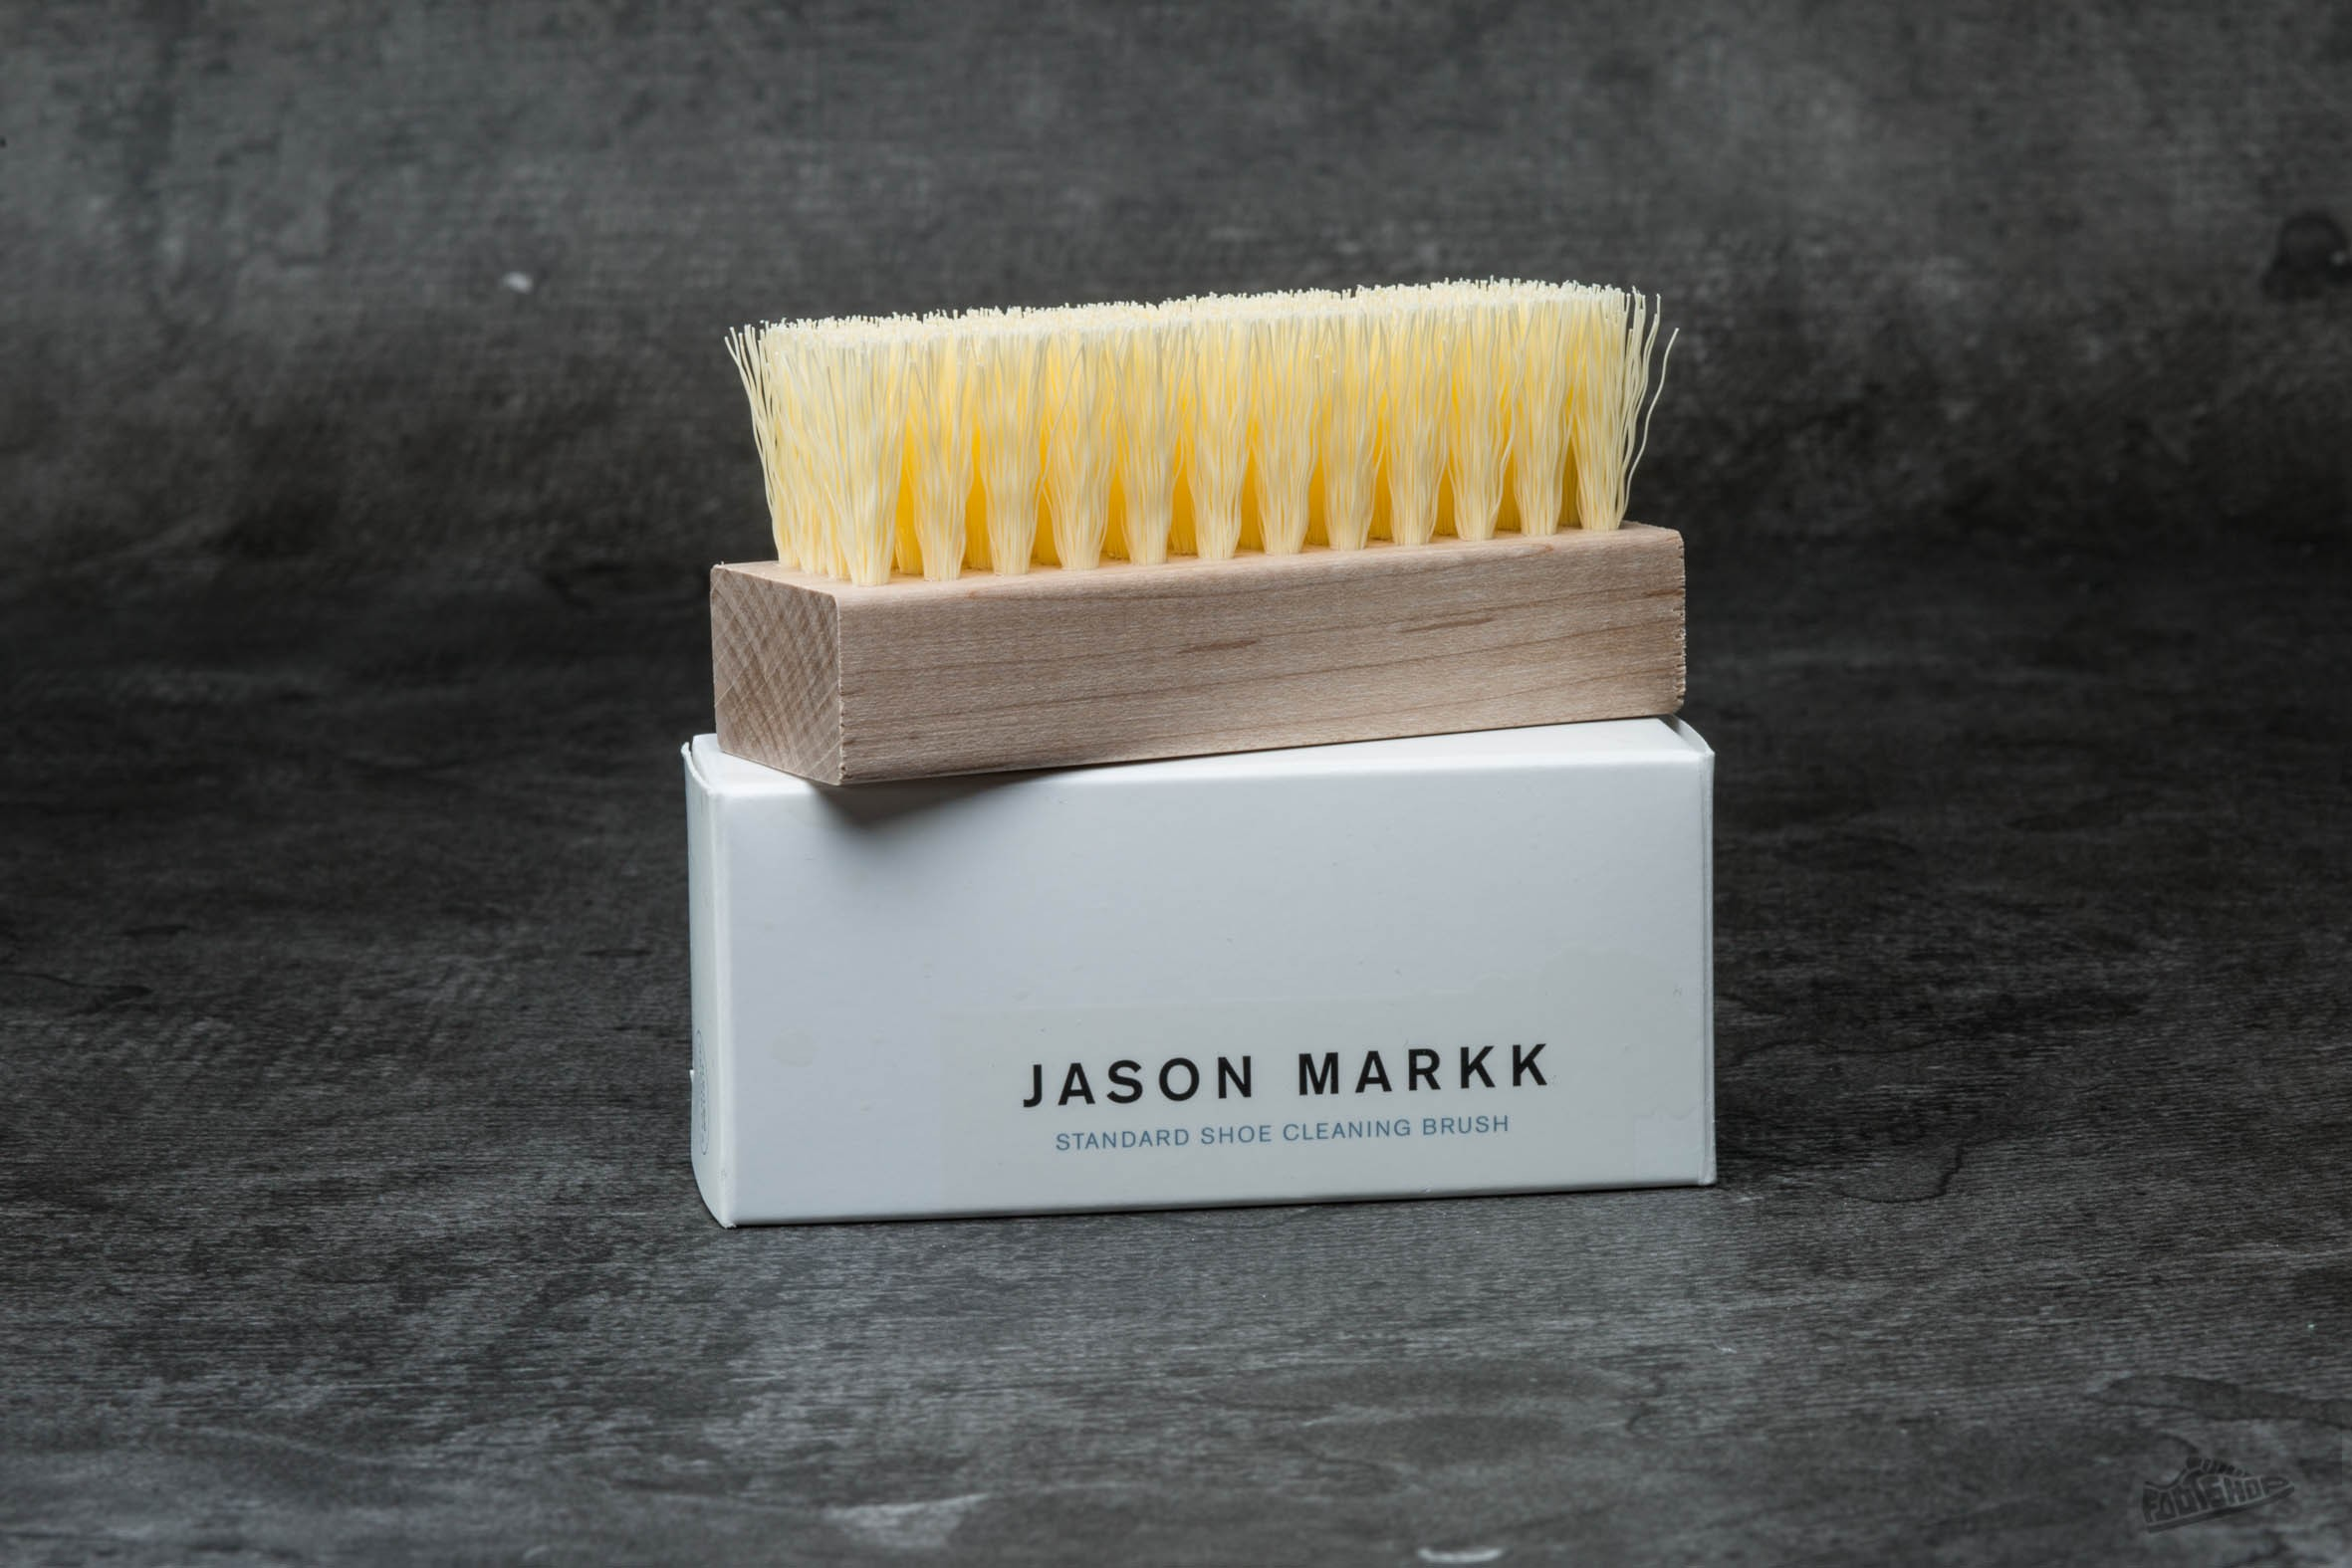 Jason Markk Standard Shoe Cleaning Brush - 8617